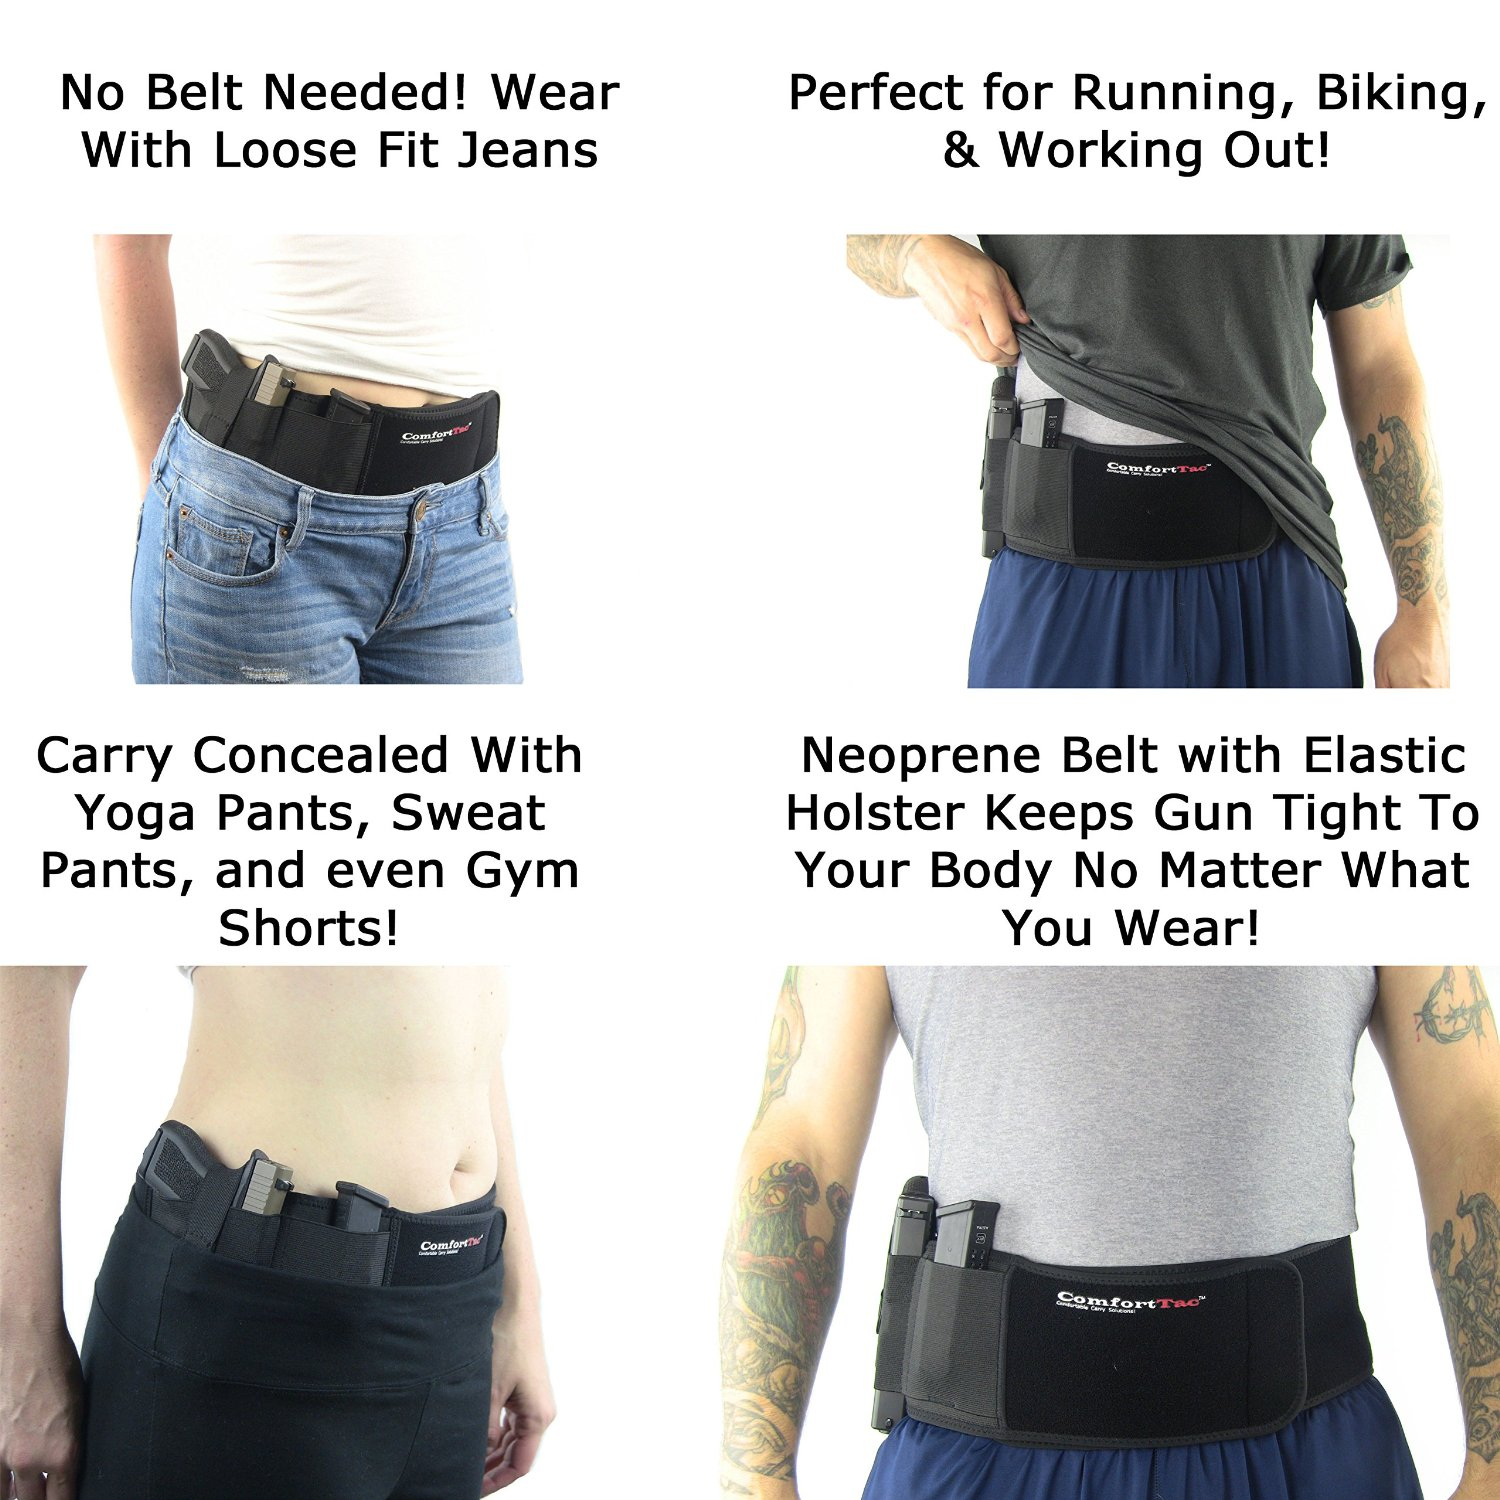 Top 5 Best Belly Band Holsters: Belly Band Concealment